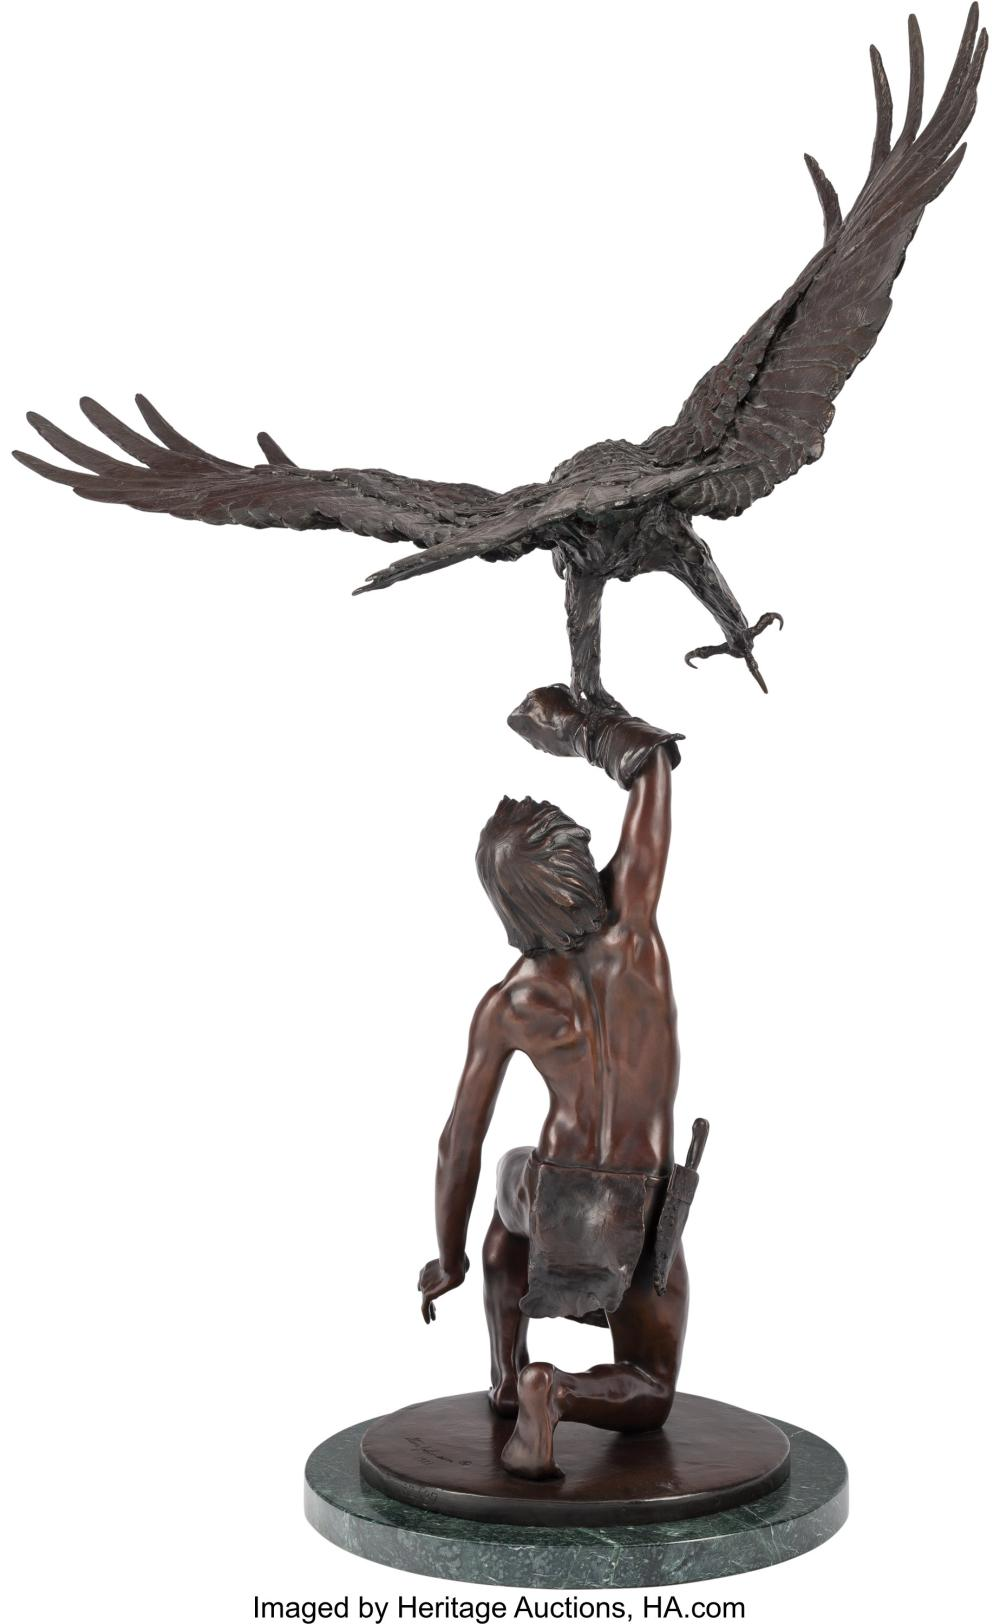 Lot 21079: Stanley Quentin Johnson (American, 1939-2017) Eagle in Flight, 1981 Bronze with